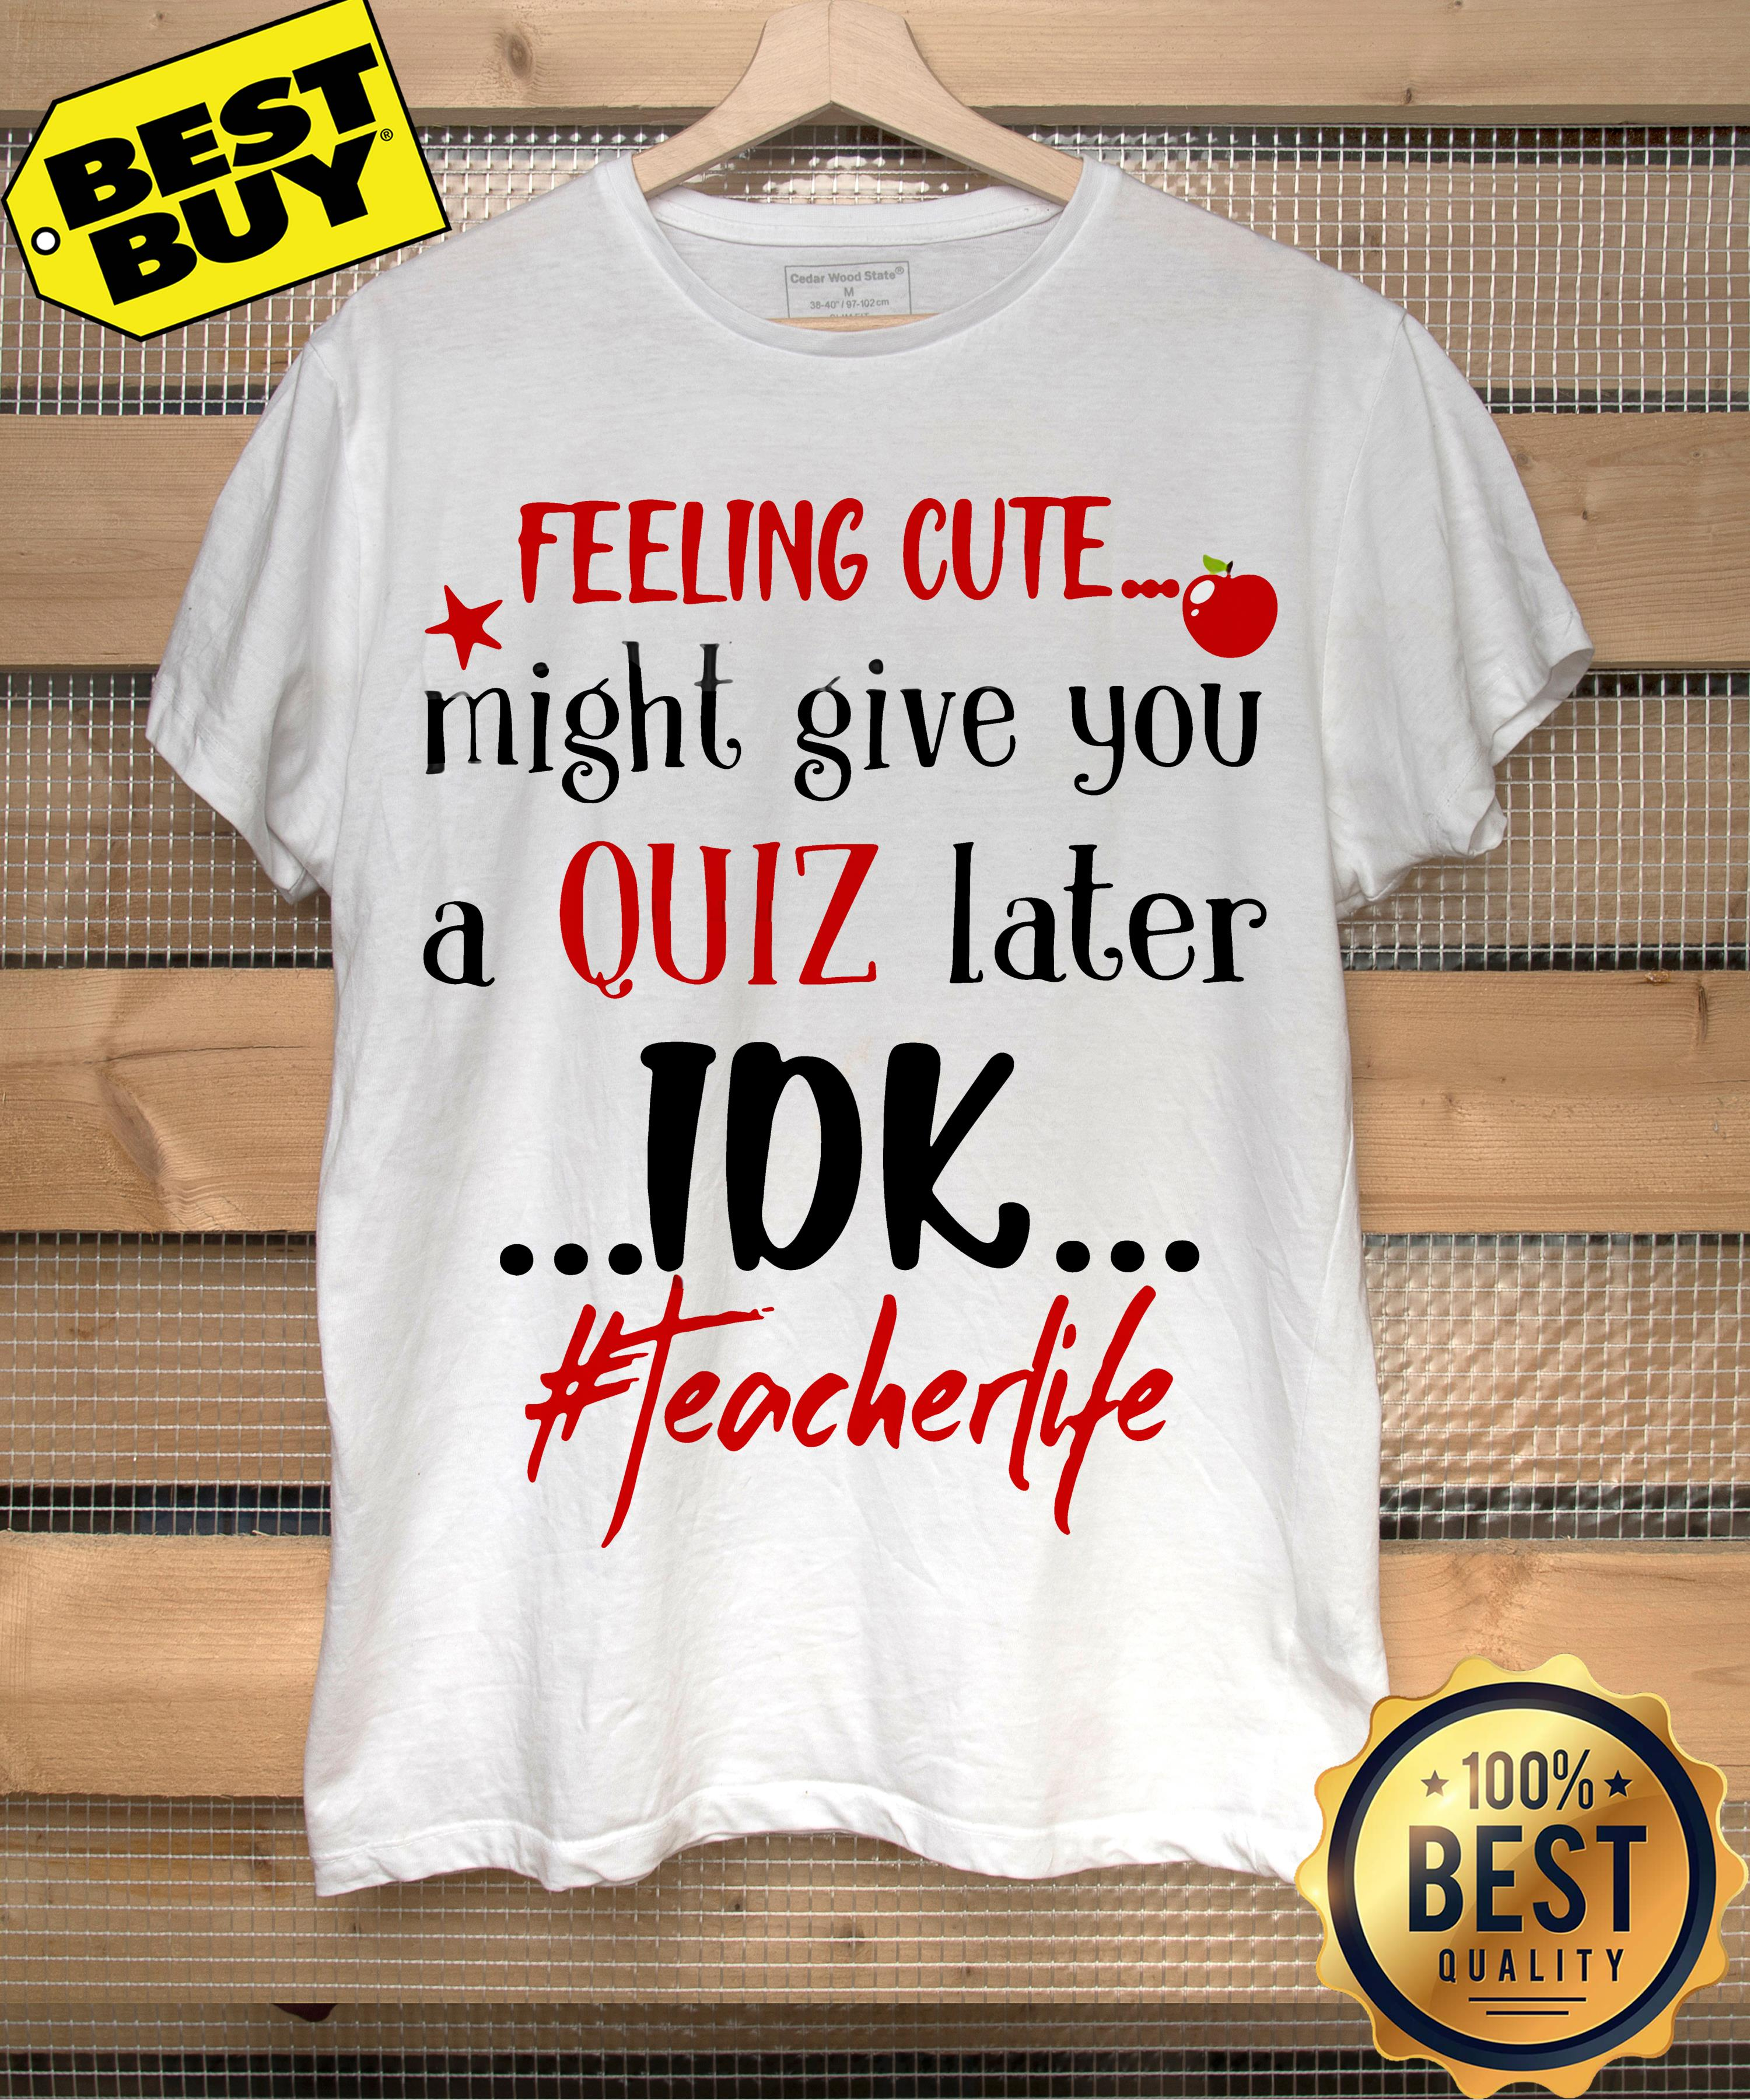 Feeling cute might give you a quiz later IDK #teacherlife ladies tee